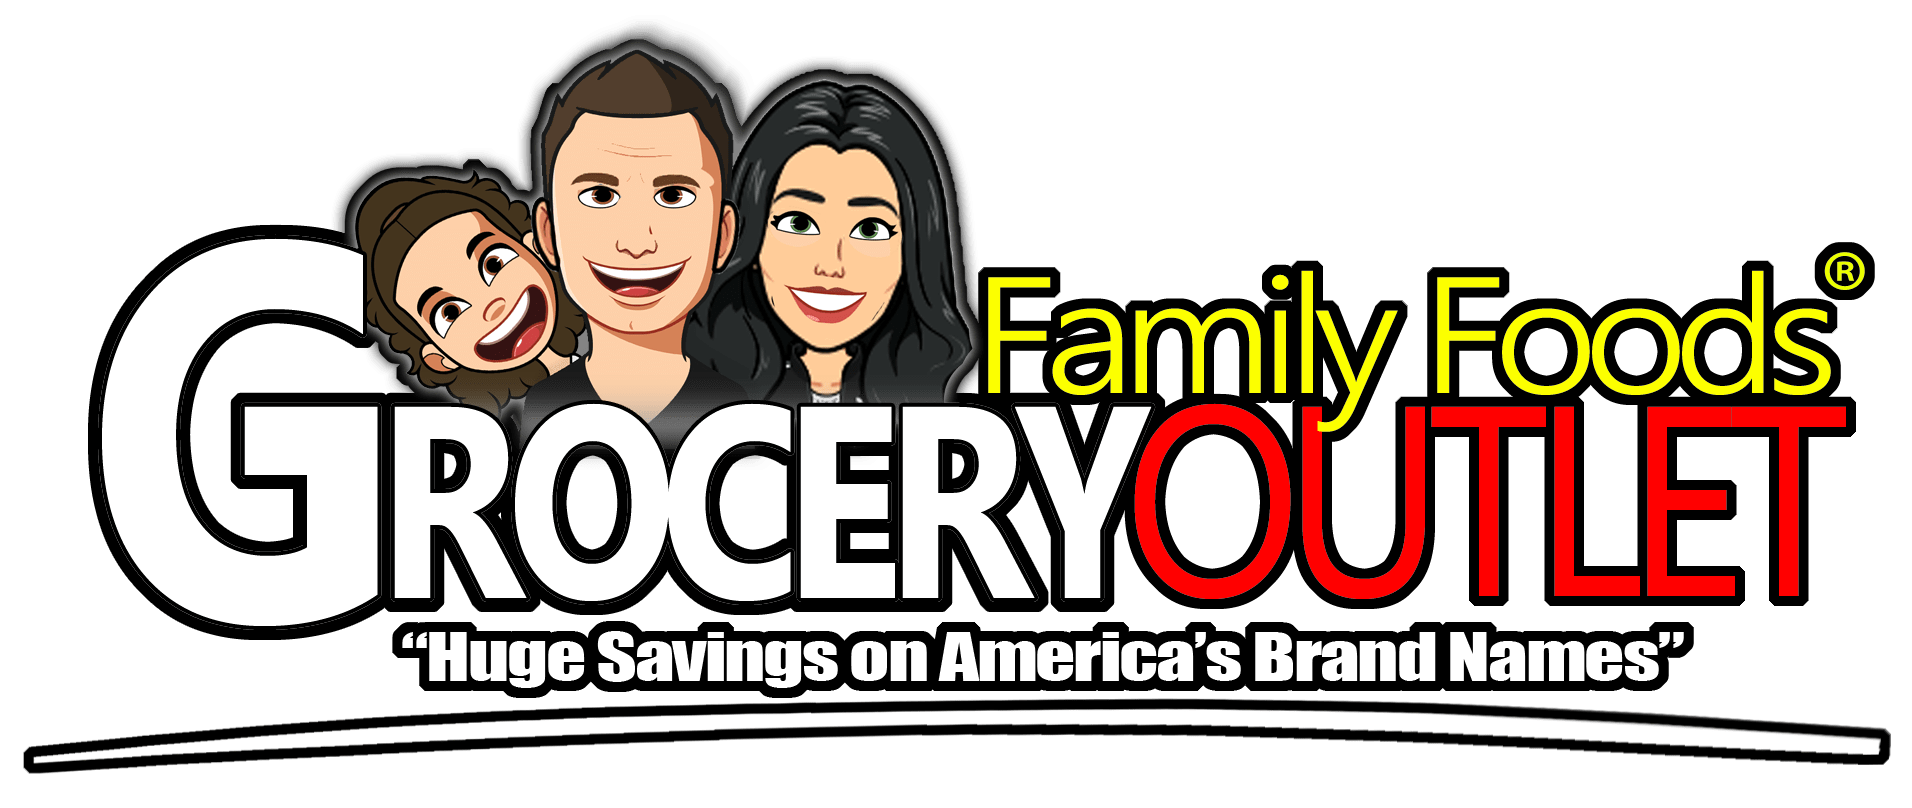 Family Foods Grocery Outlet